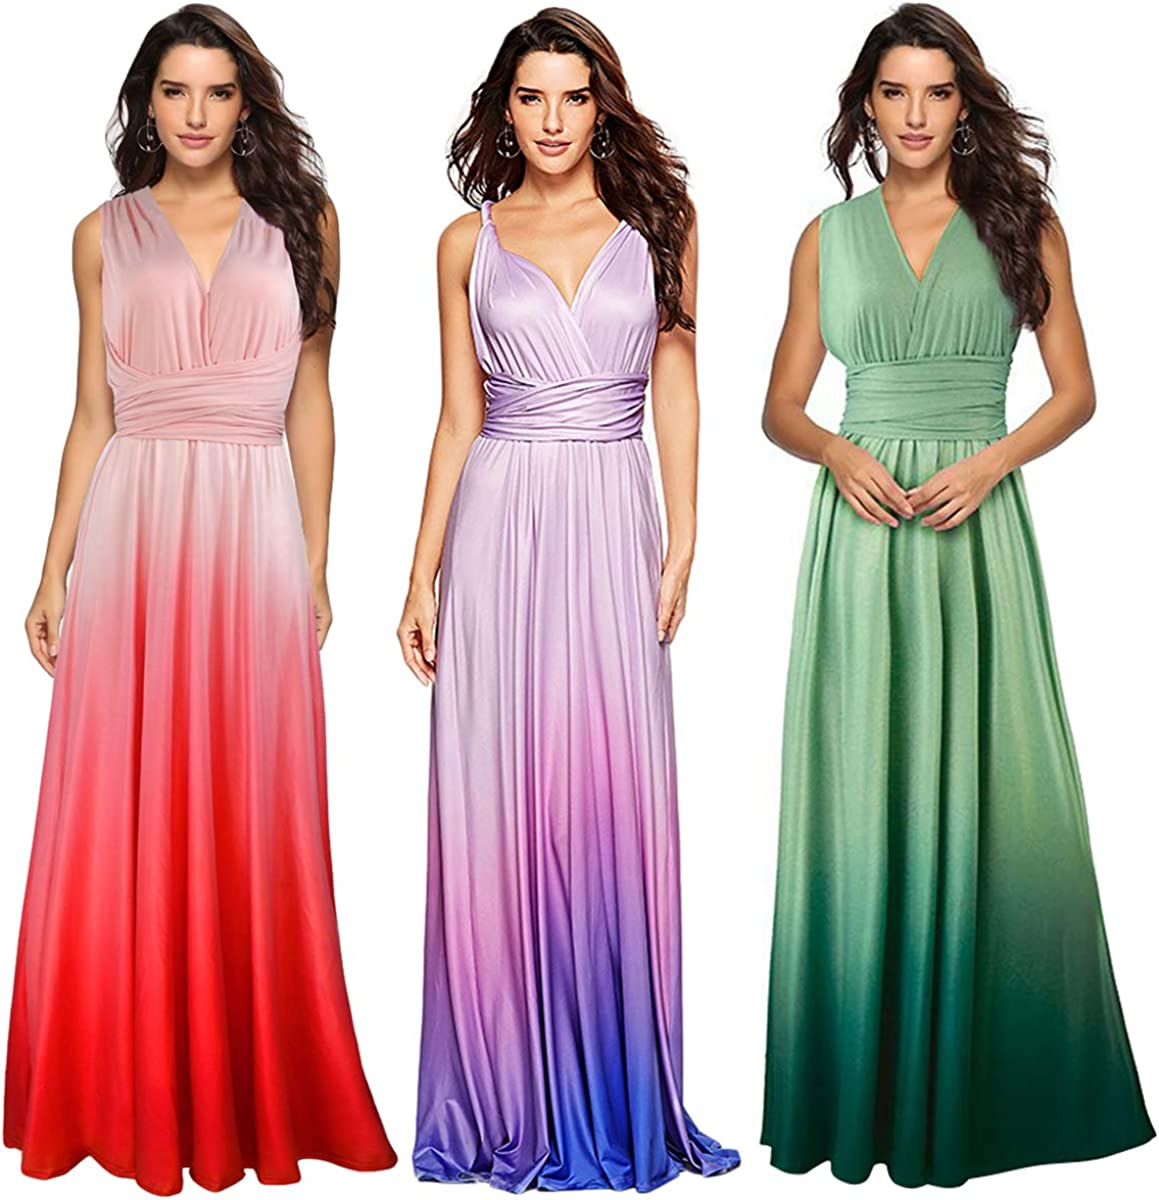 Womens Transformer Casual Gradient Color Deep V Neck Convertible Wrap Multi Way Dress Sleeveless Halter Formal Wedding Party Floor Length Cocktail Gown Long Maxi Dress Gradient Blue X-Large